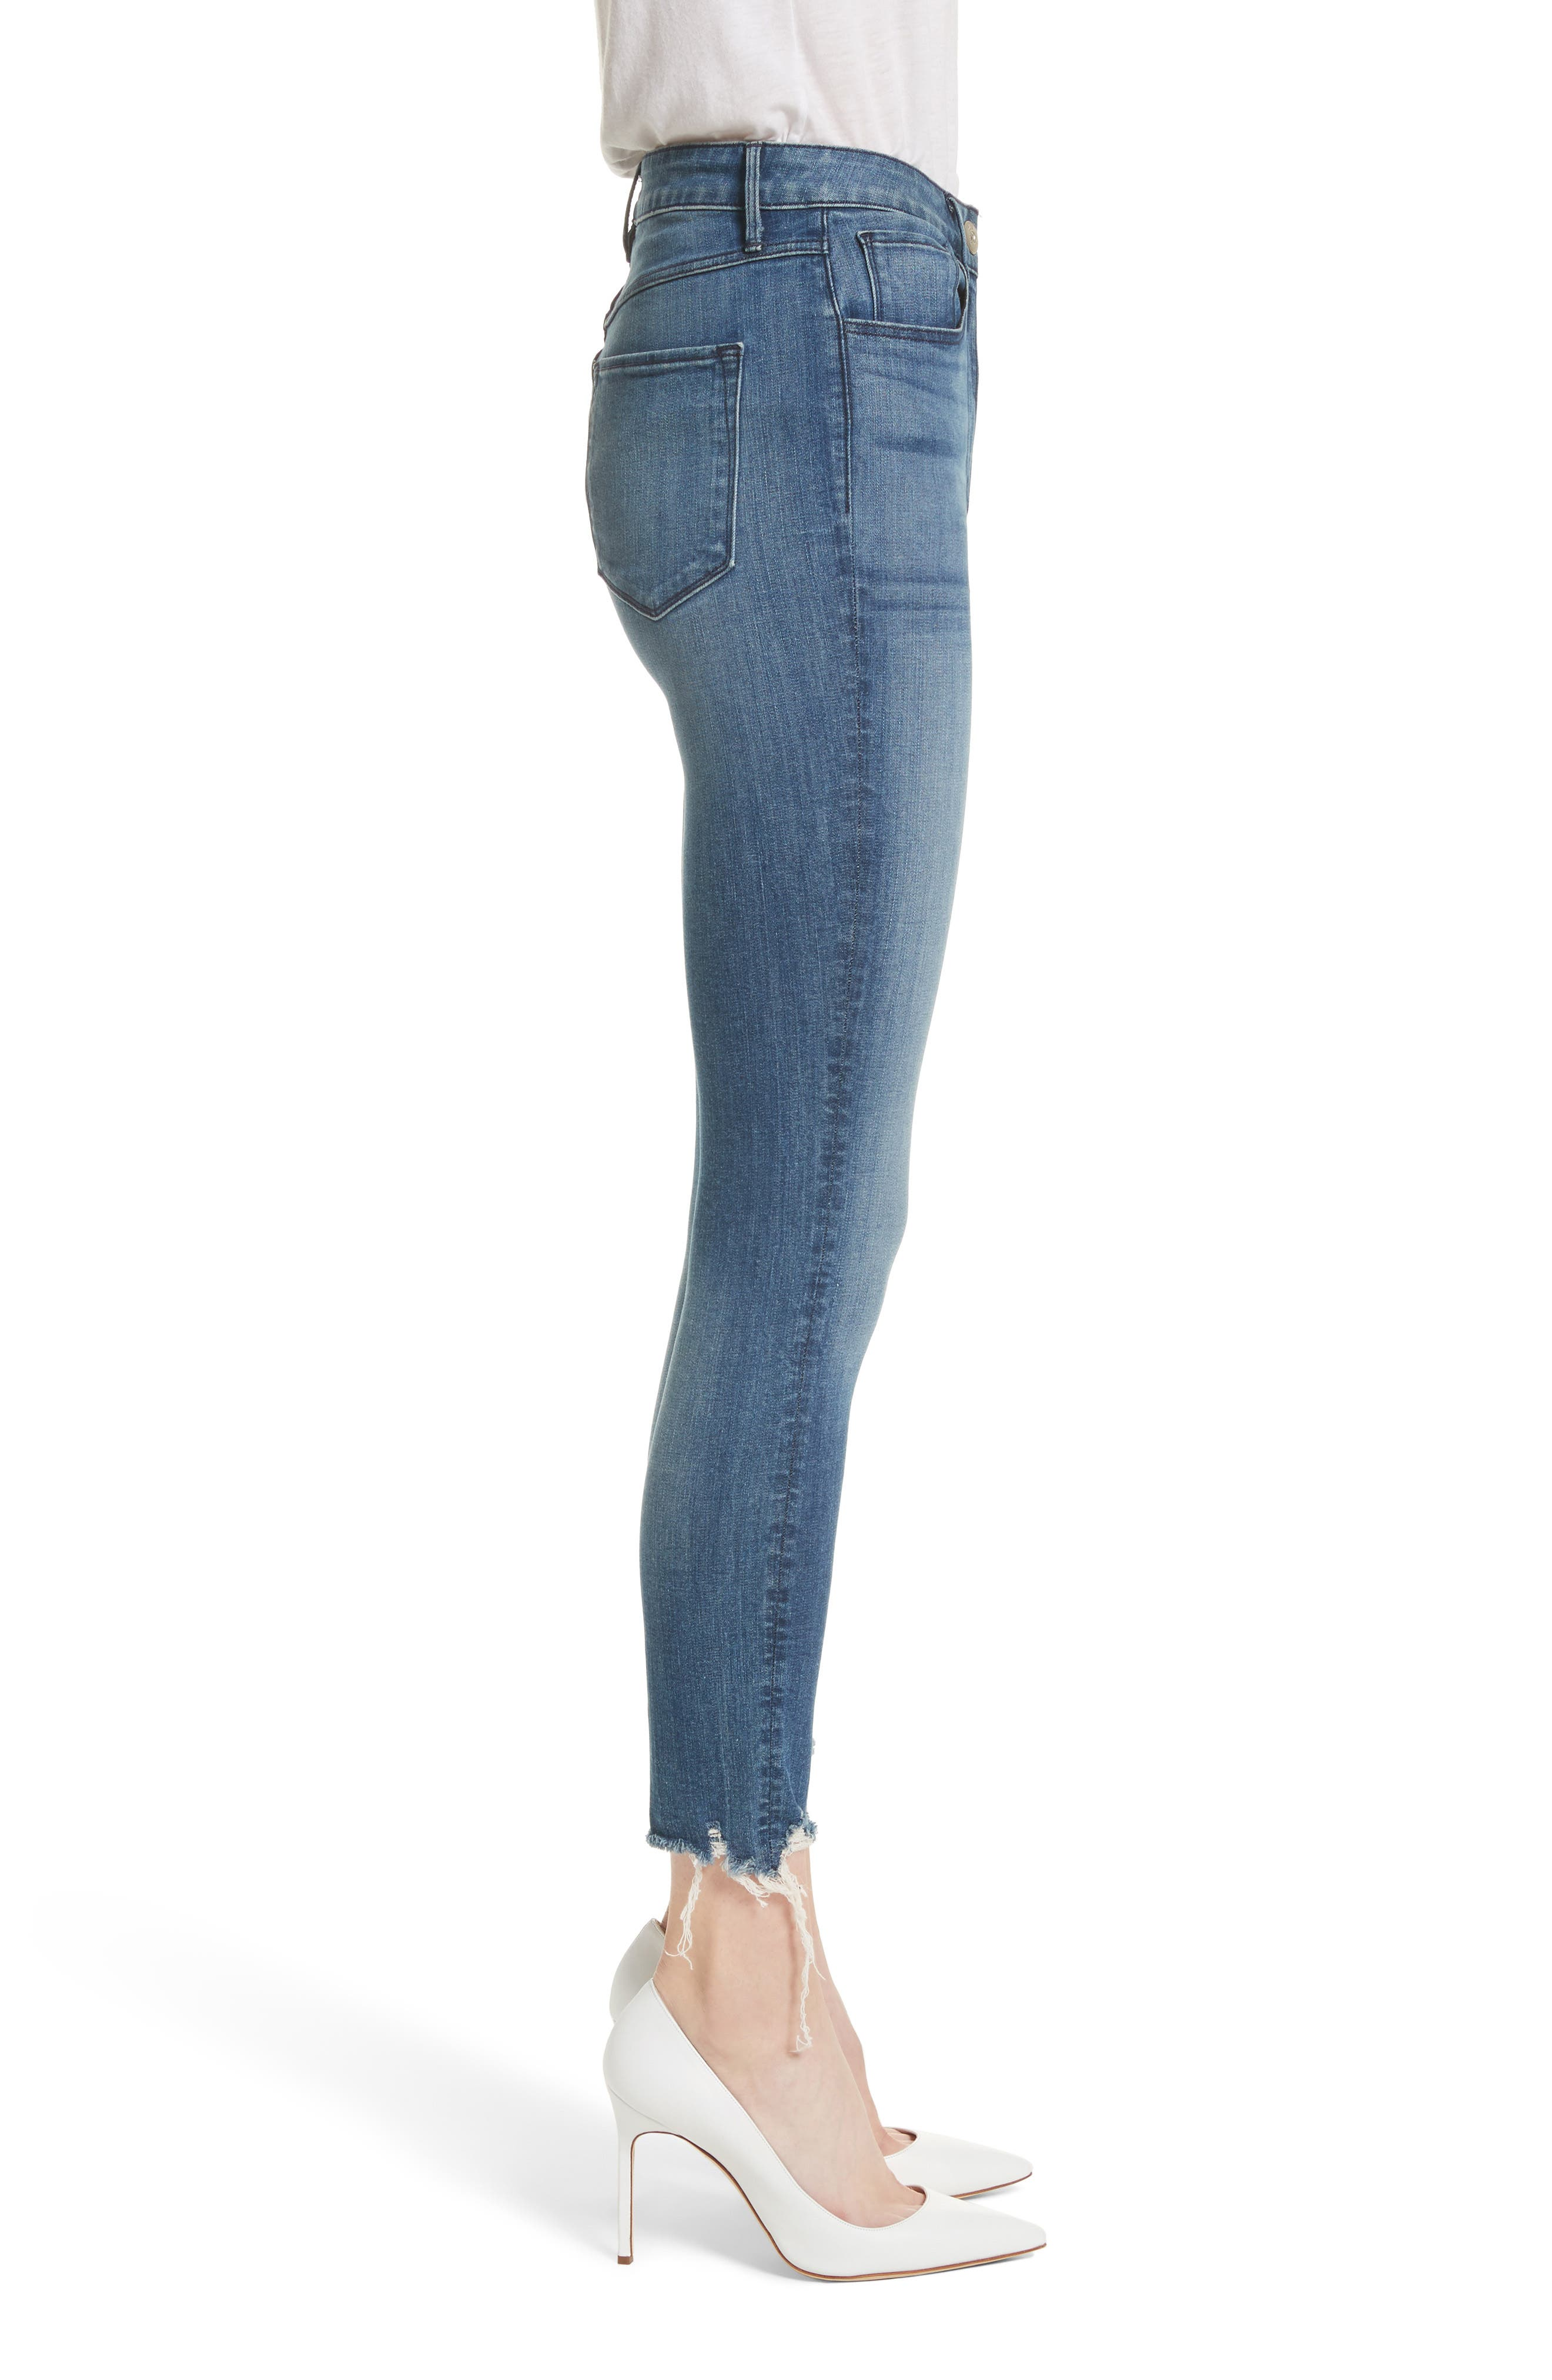 W3 Crop Skinny Jeans,                             Alternate thumbnail 3, color,                             428